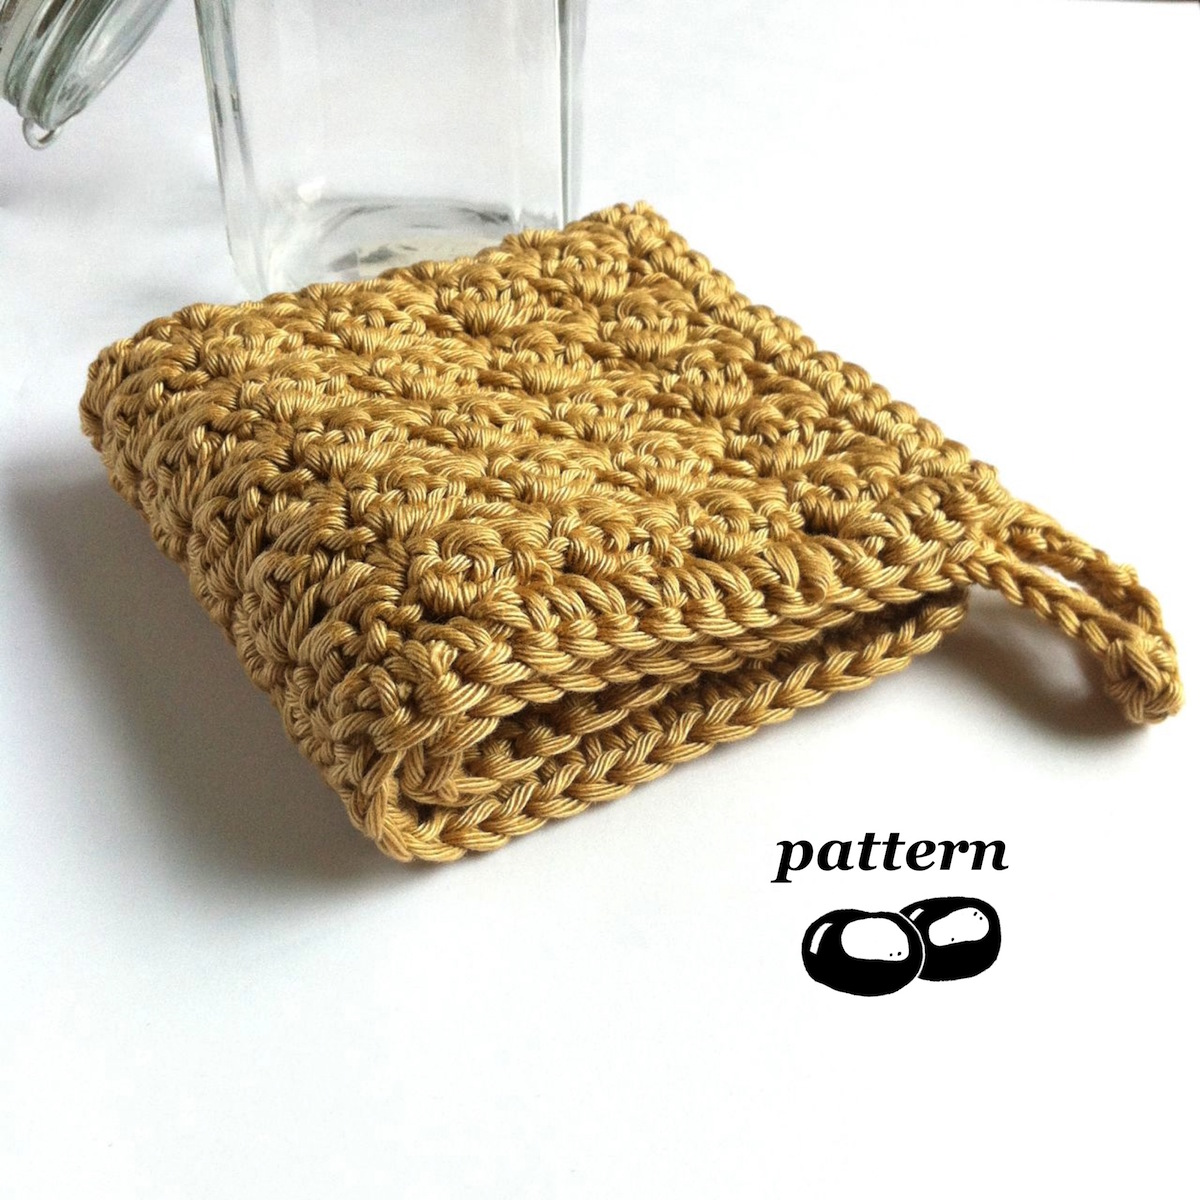 Crochet Pattern for a Washcloth